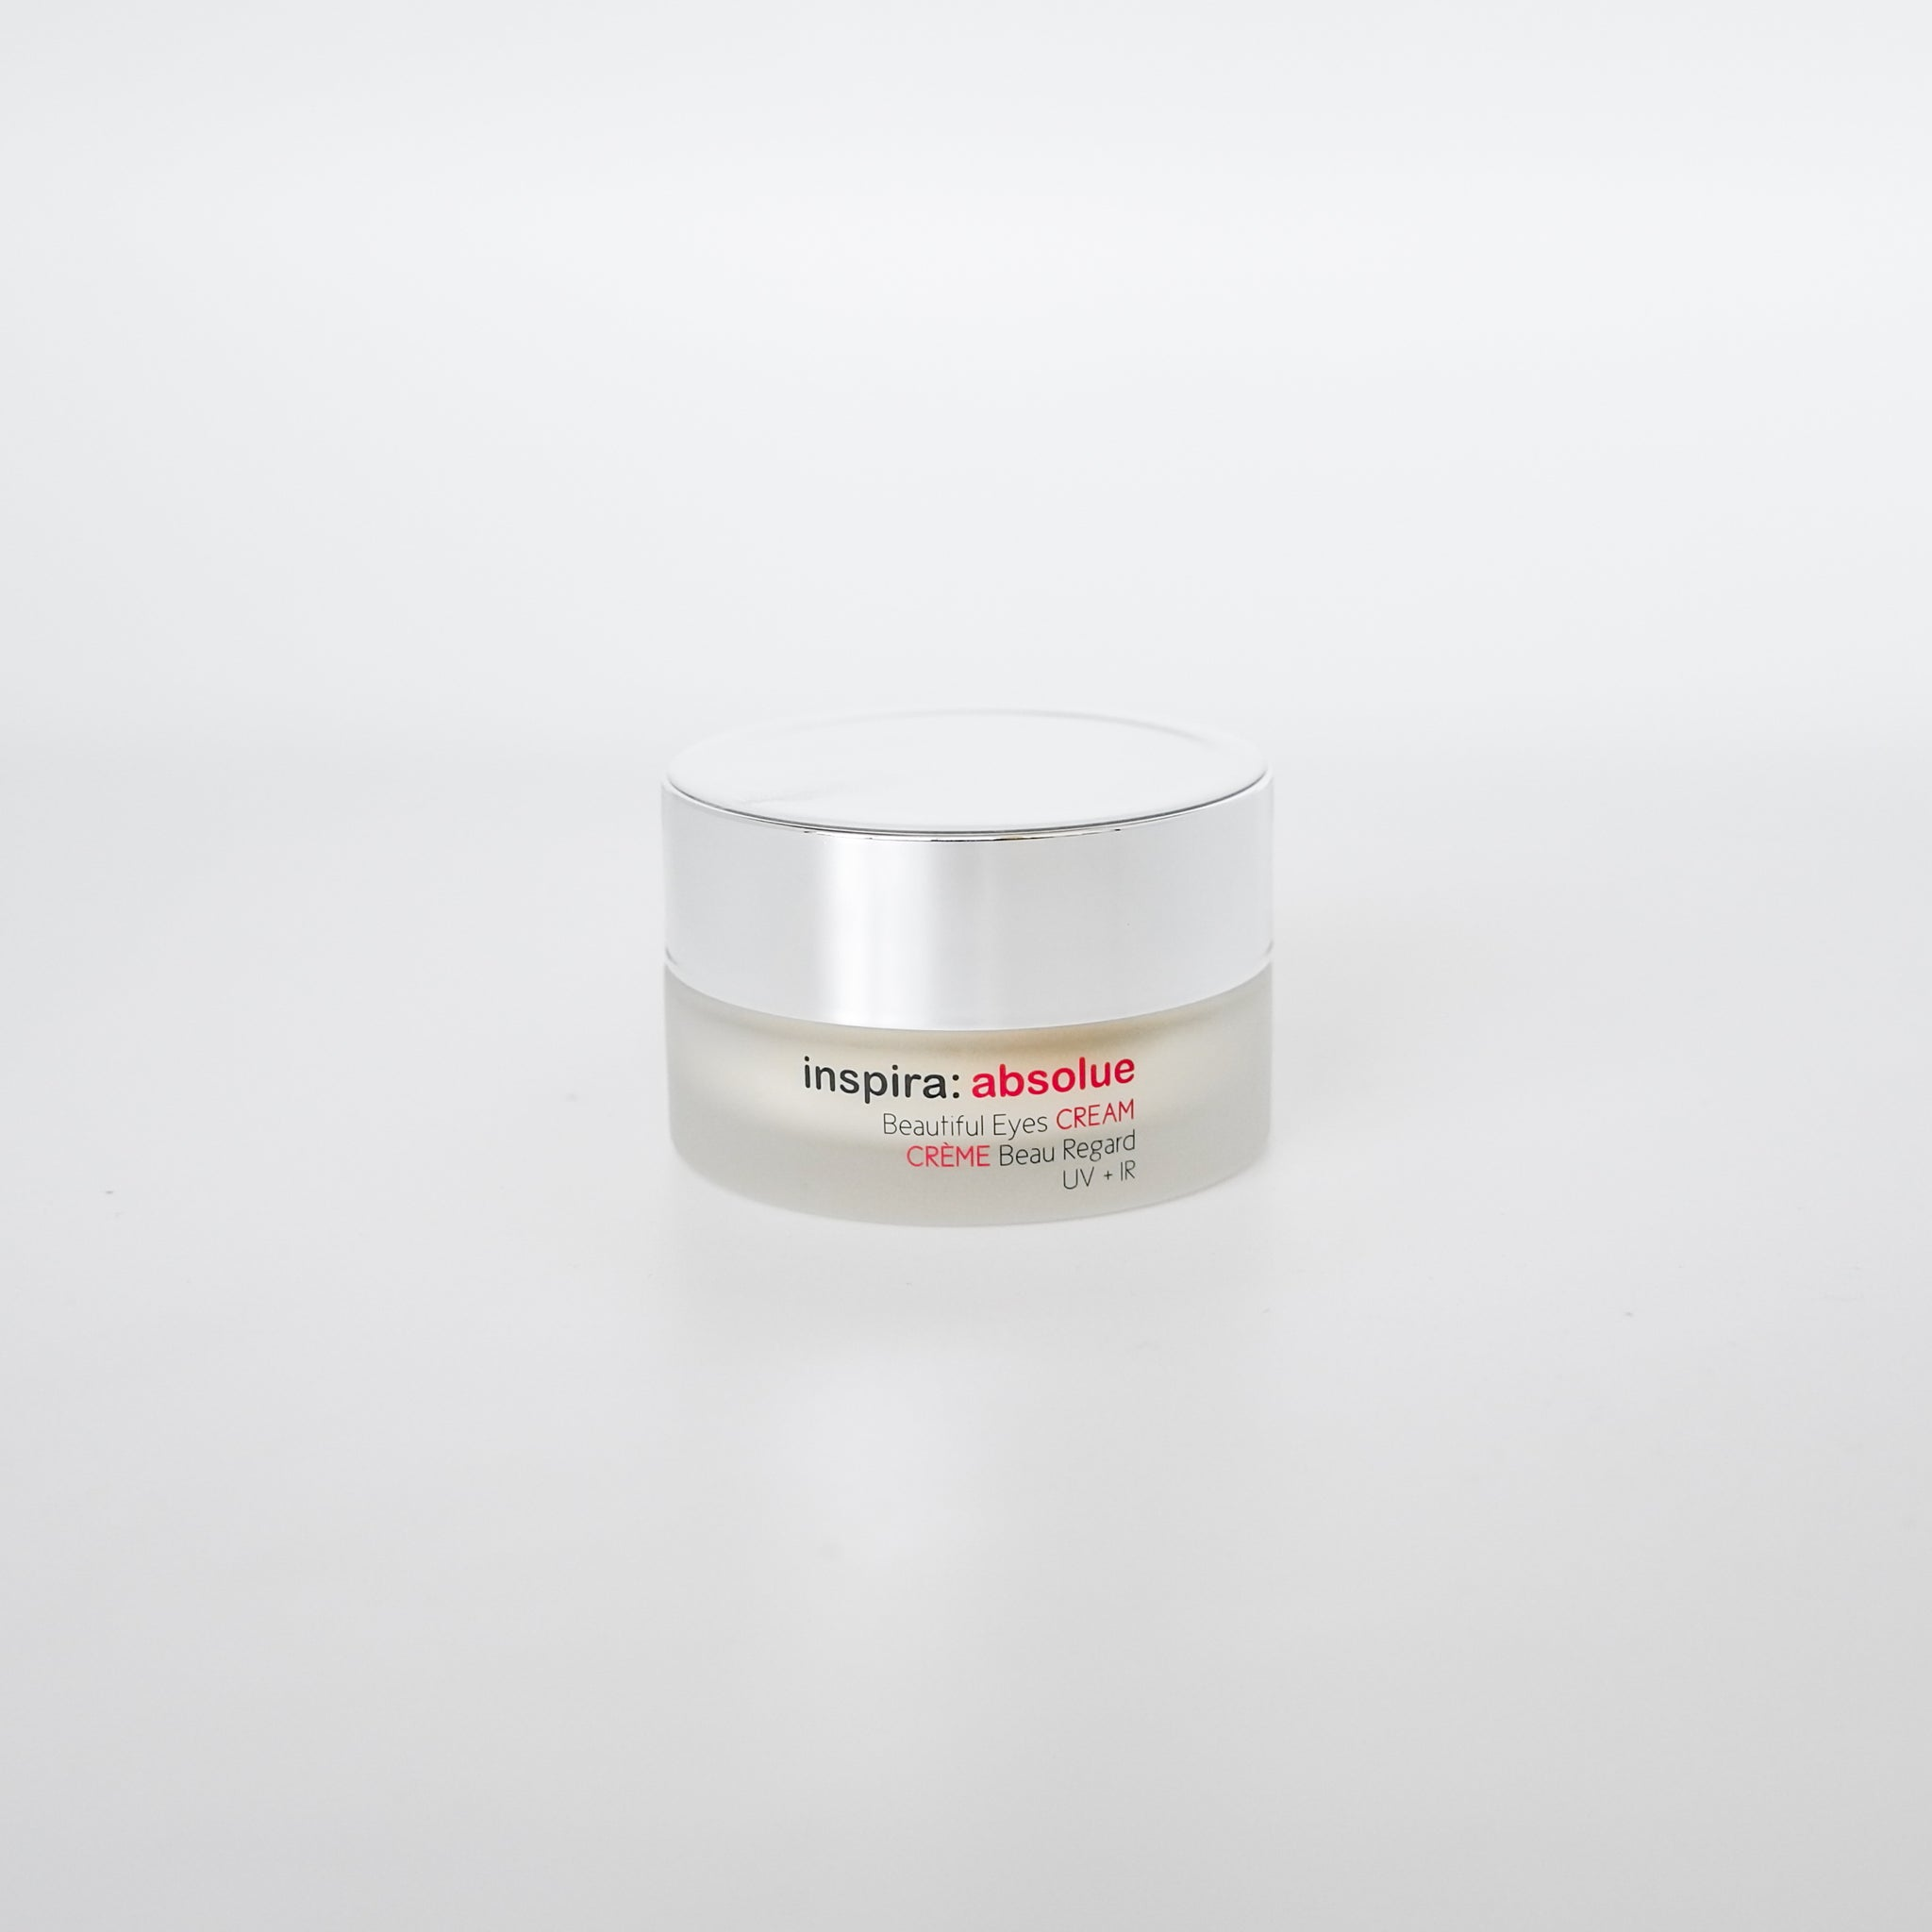 inspira:absolue Beautiful Eyes Cream, Moisturizing, Inspira Absolue - Astrid Wylde